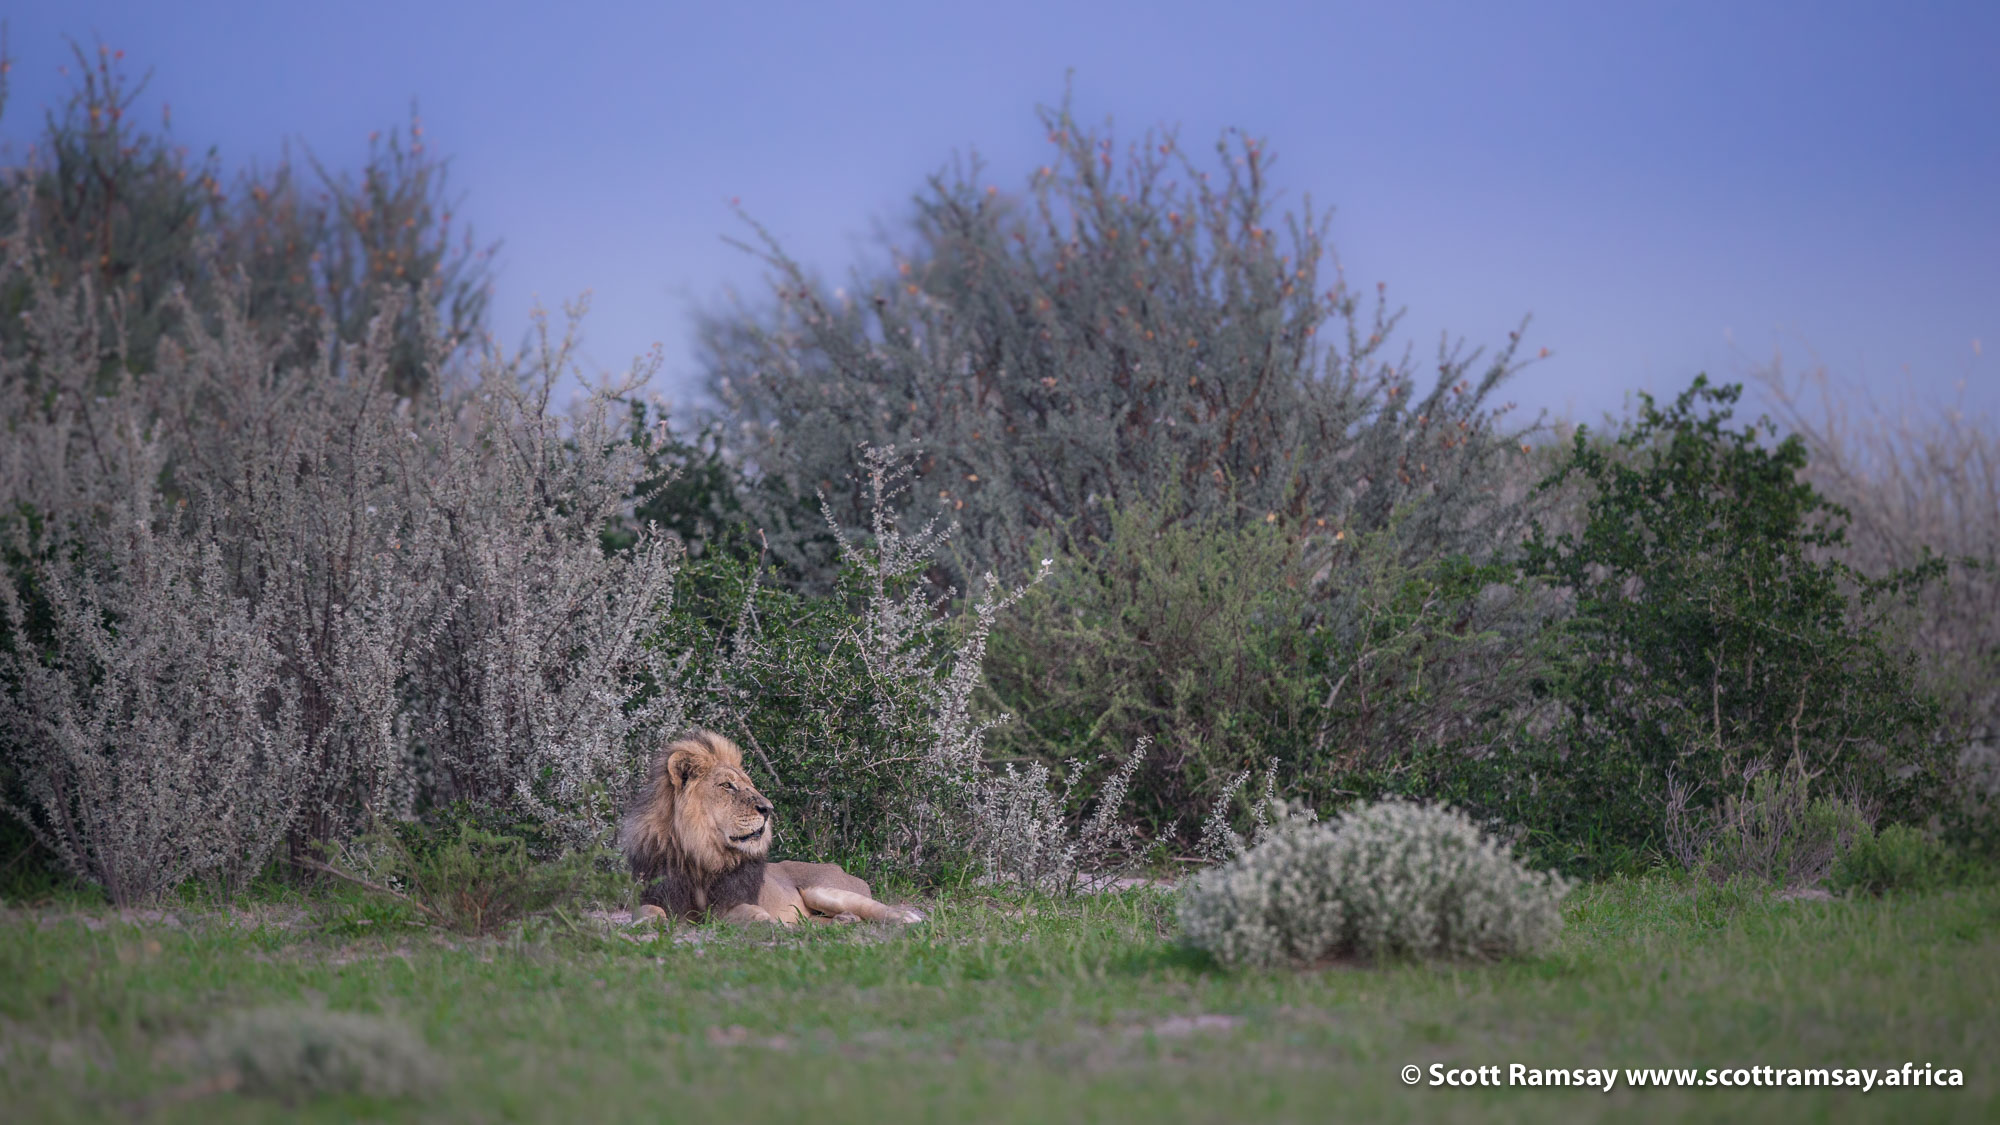 Our big male lion, still alone, still looking for his females...we spotted him on our last morning at Piper's Pan. Because the sun hadn't risen yet, the light was wonderfully soft. You've got about about twenty minutes before sunrise and ten minutes after sunset to get your soft-light shots...